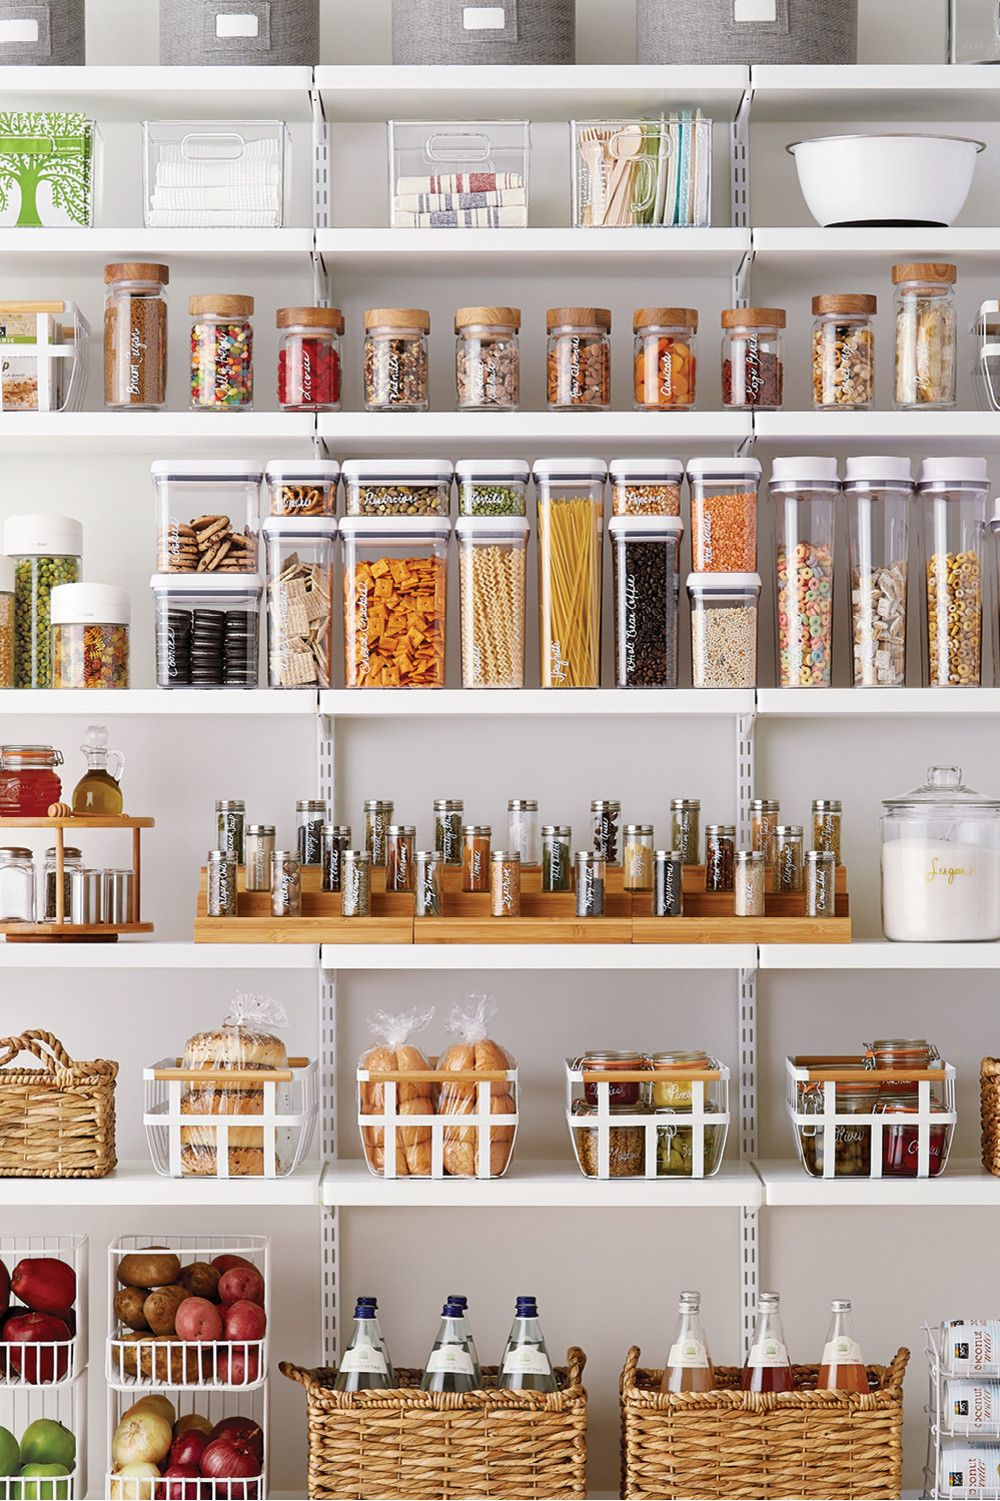 Kitchen Refresh: Pantry | let's get organized | Pinterest ...